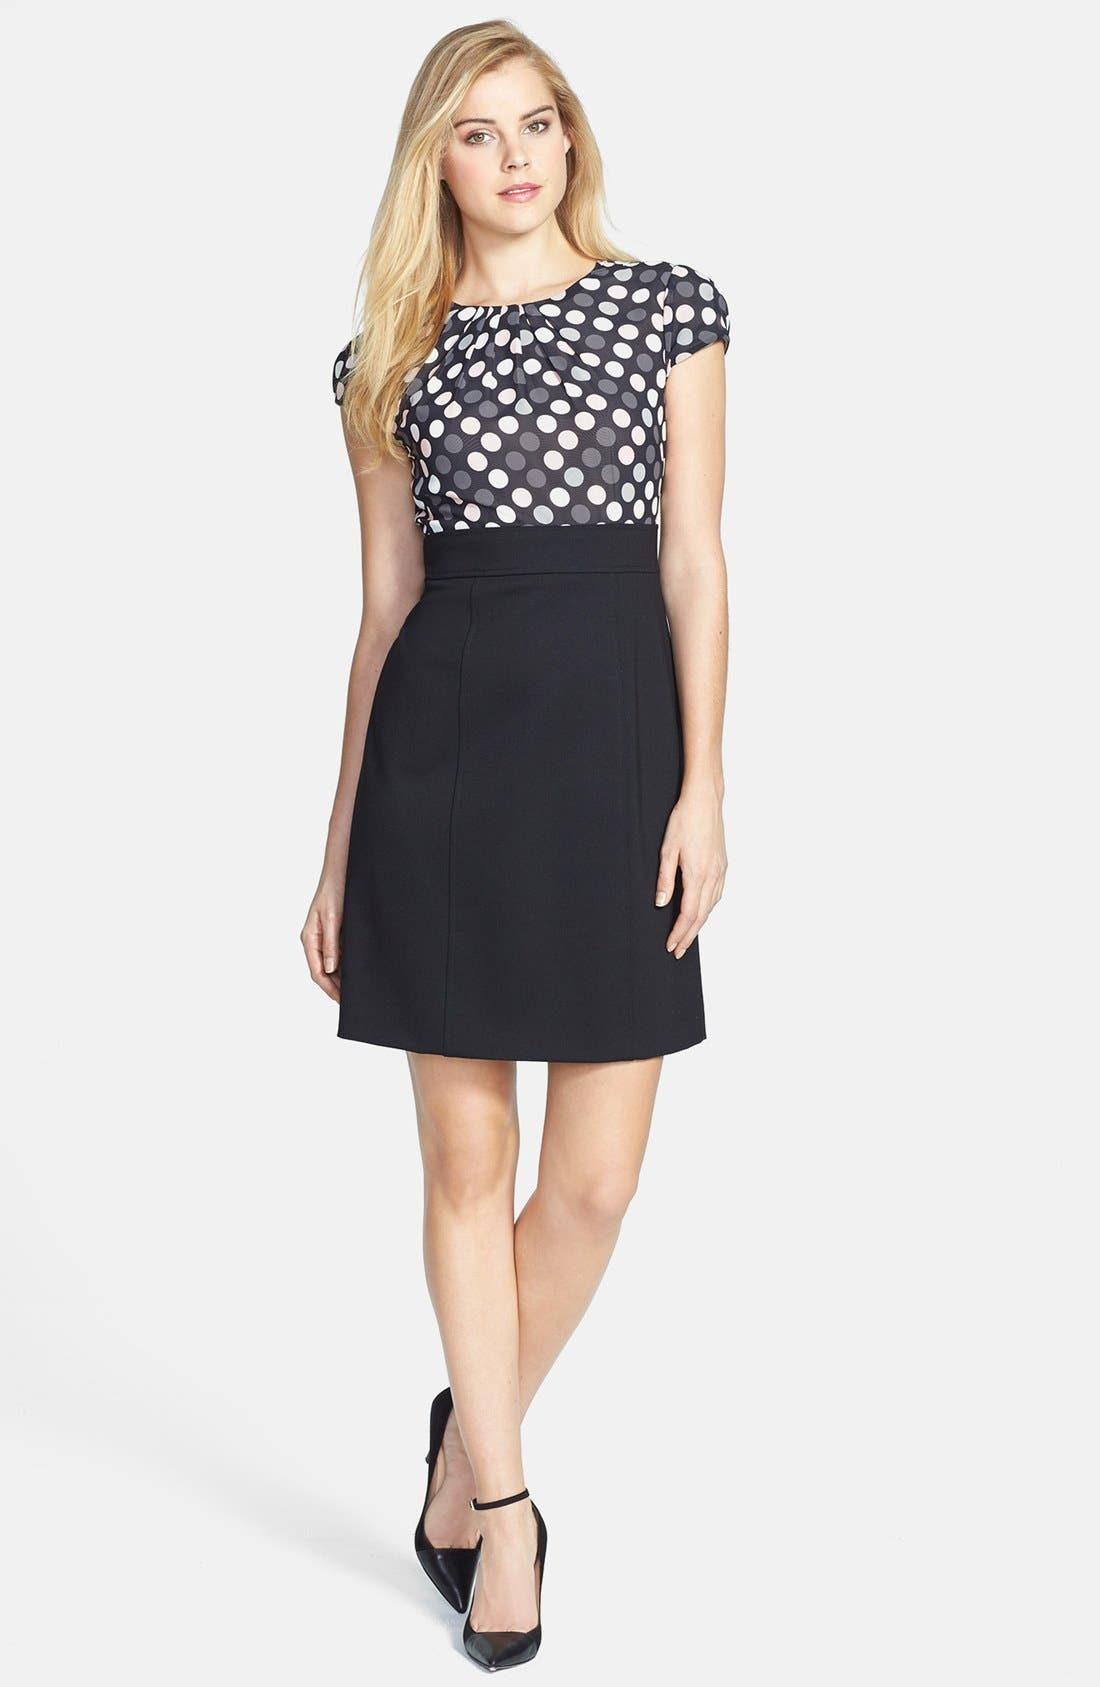 Main Image - Tahari Polka Dot Chiffon & Crepe Sheath Dress